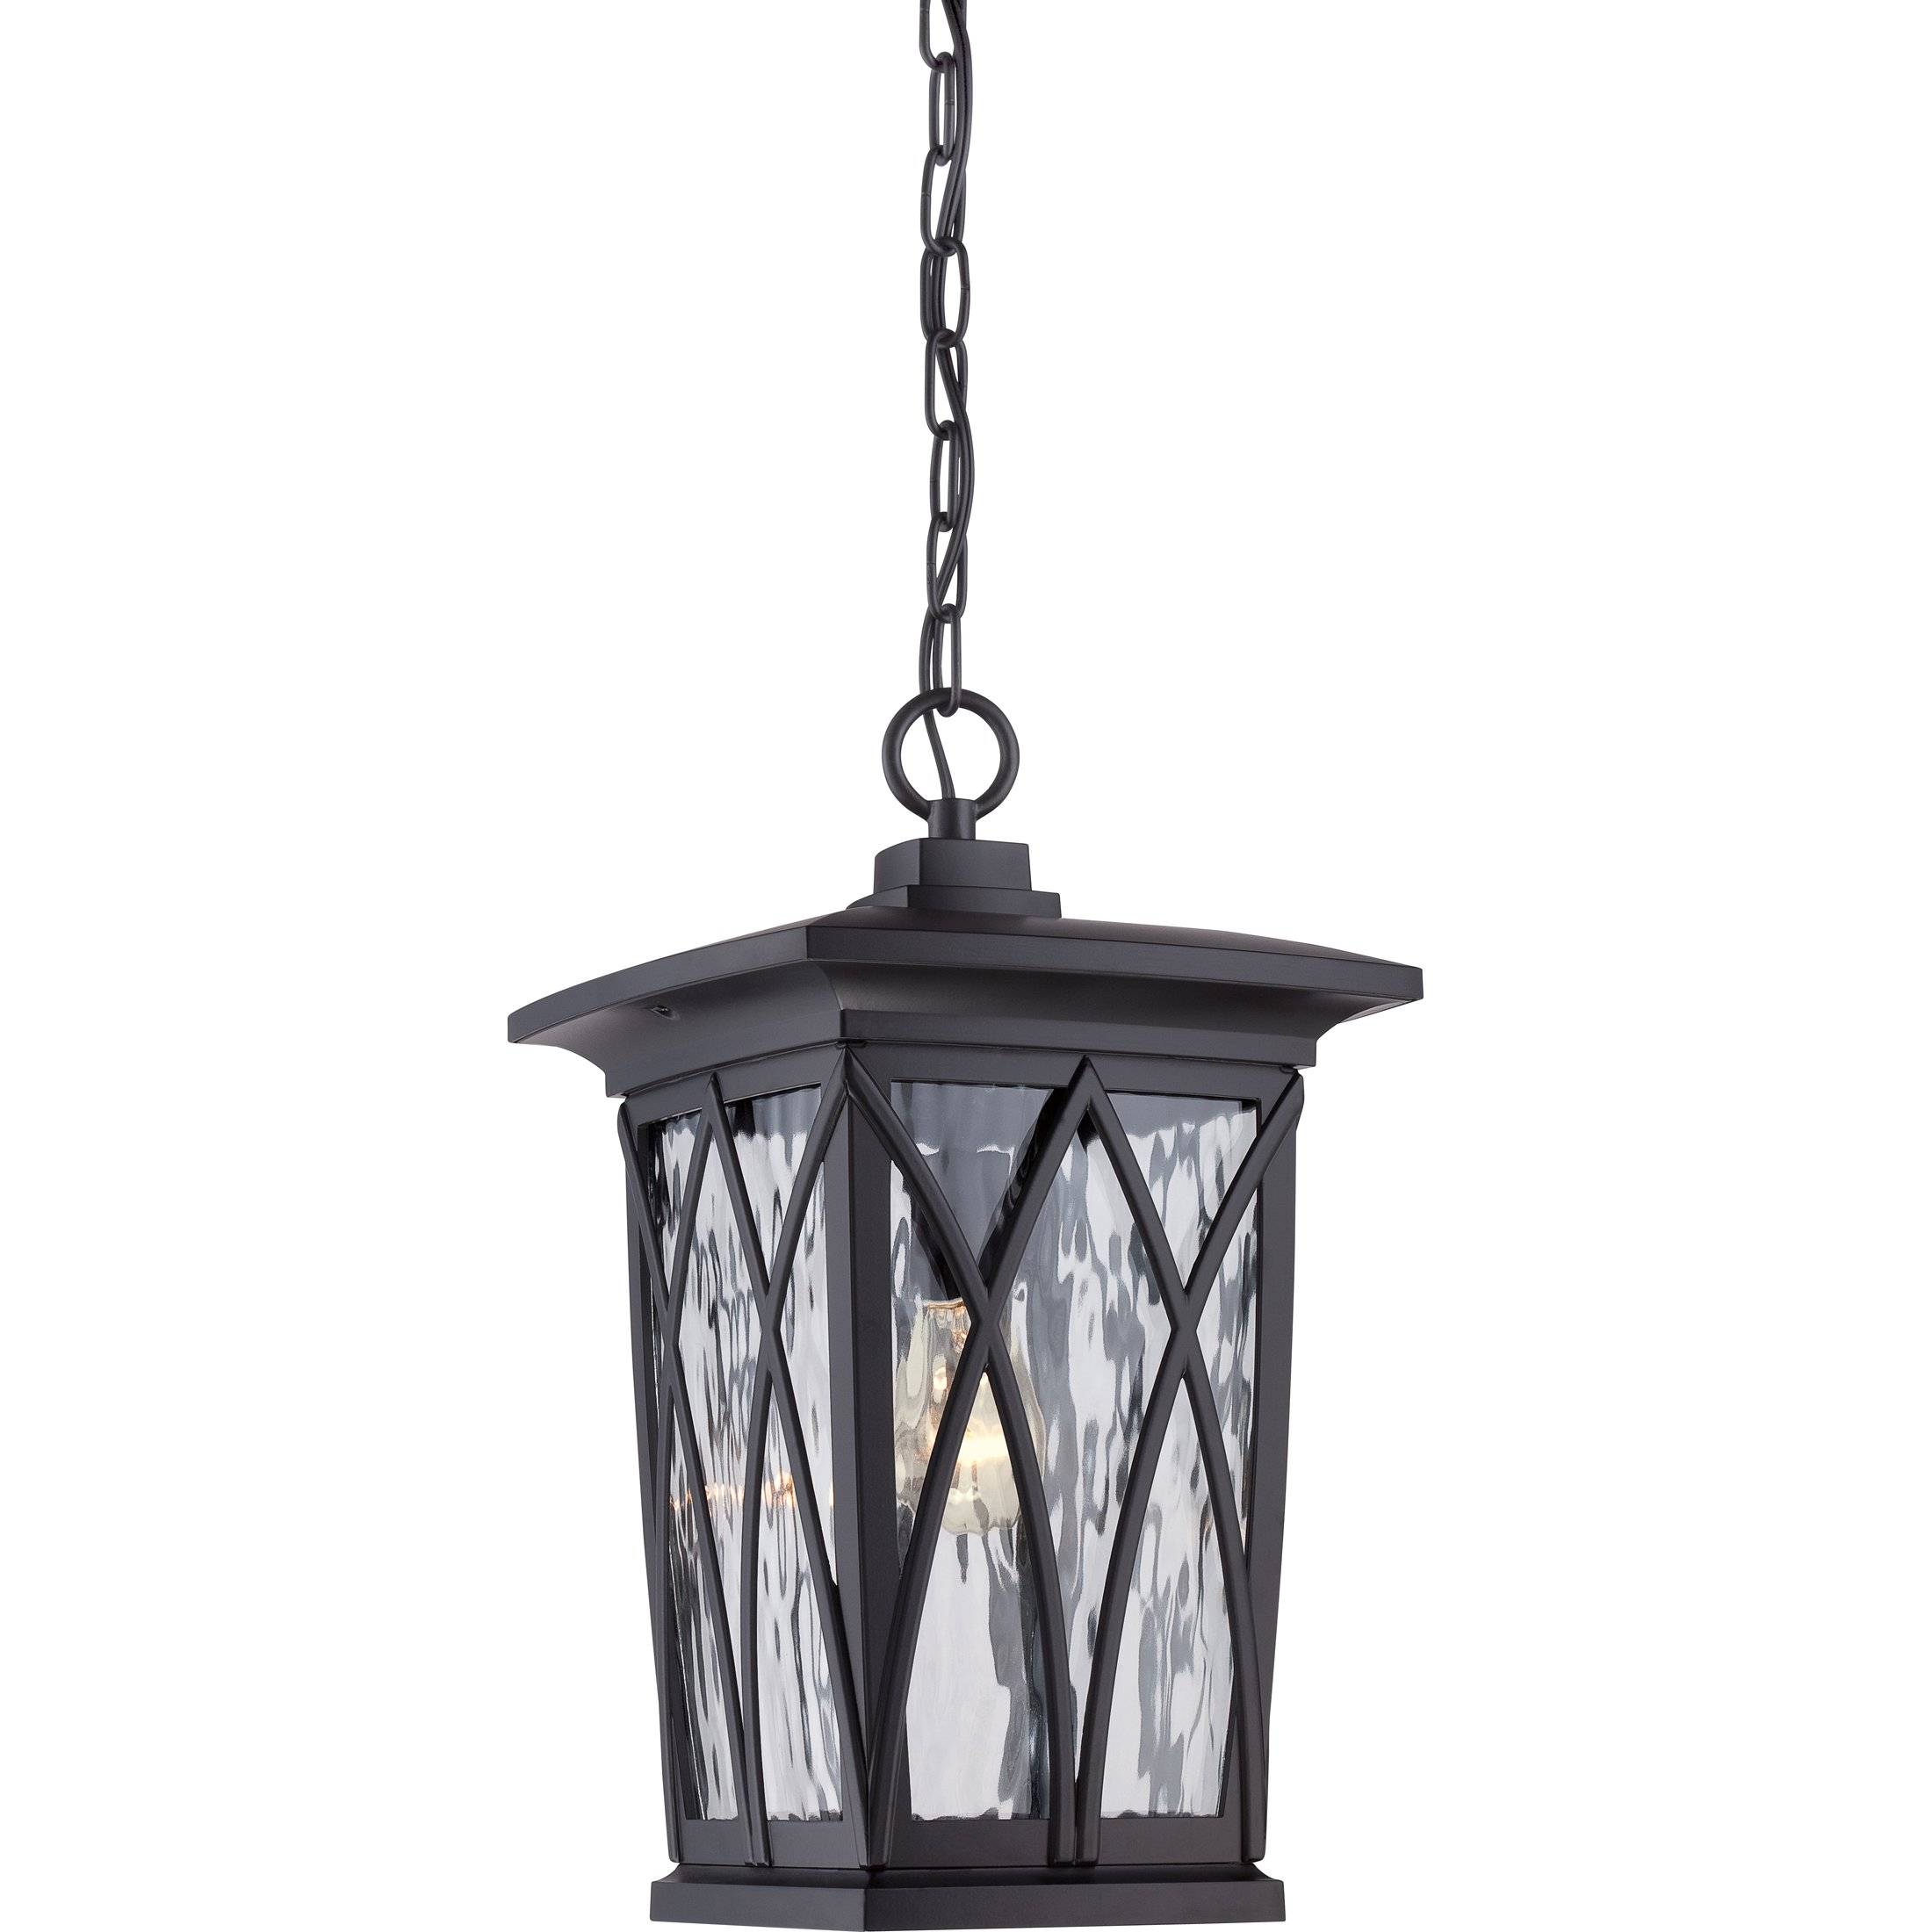 Quoizel GVR1910K One Light Outdoor Hanging Lantern by Quoizel